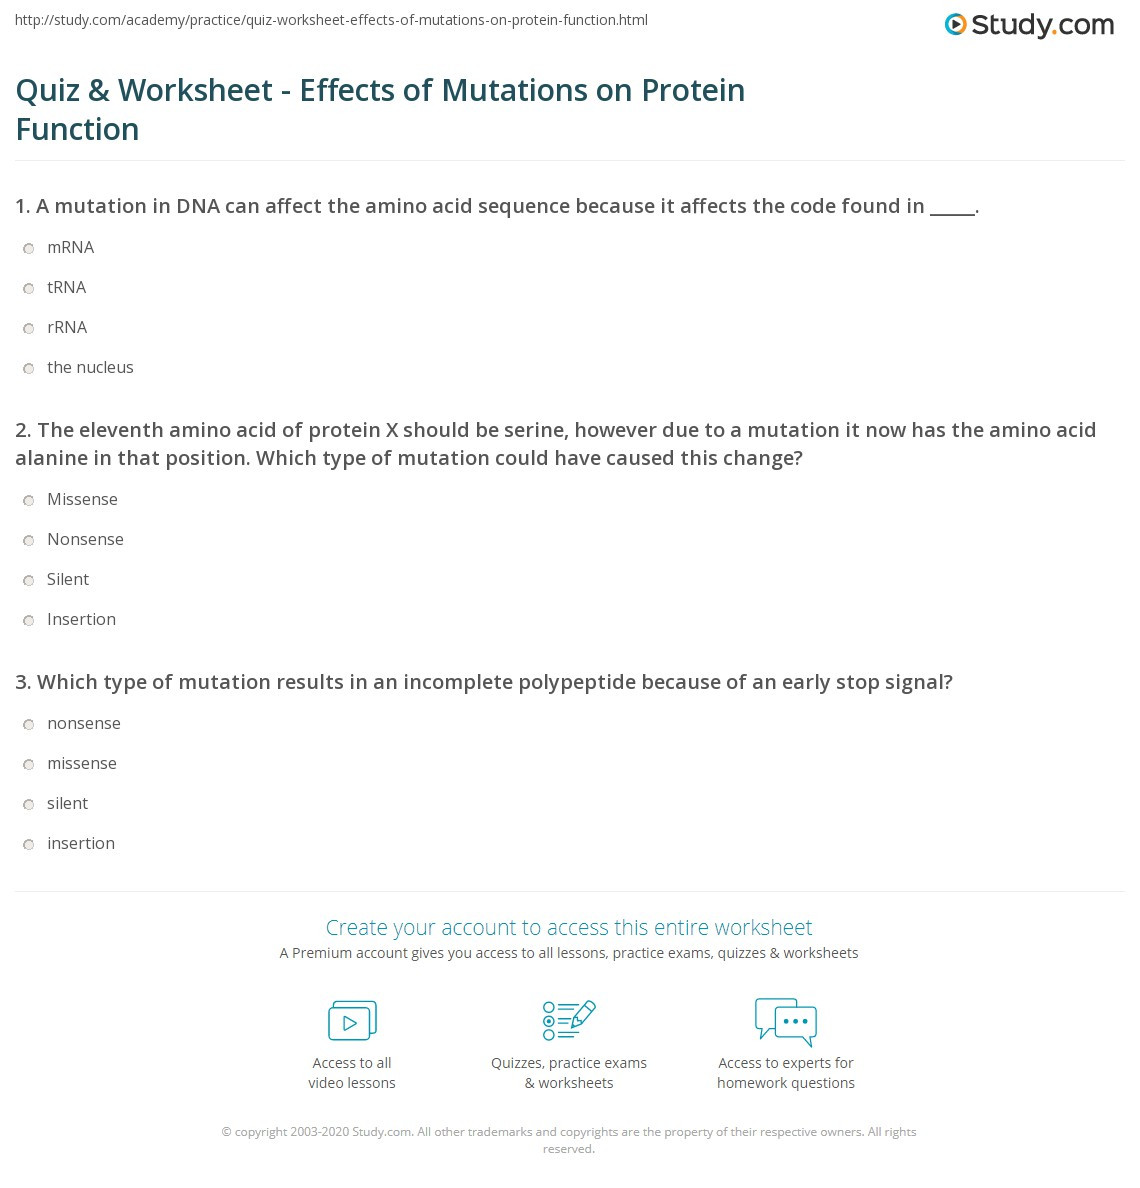 Mutations Worksheet High School Quiz & Worksheet Effects Of Mutations On Protein Function